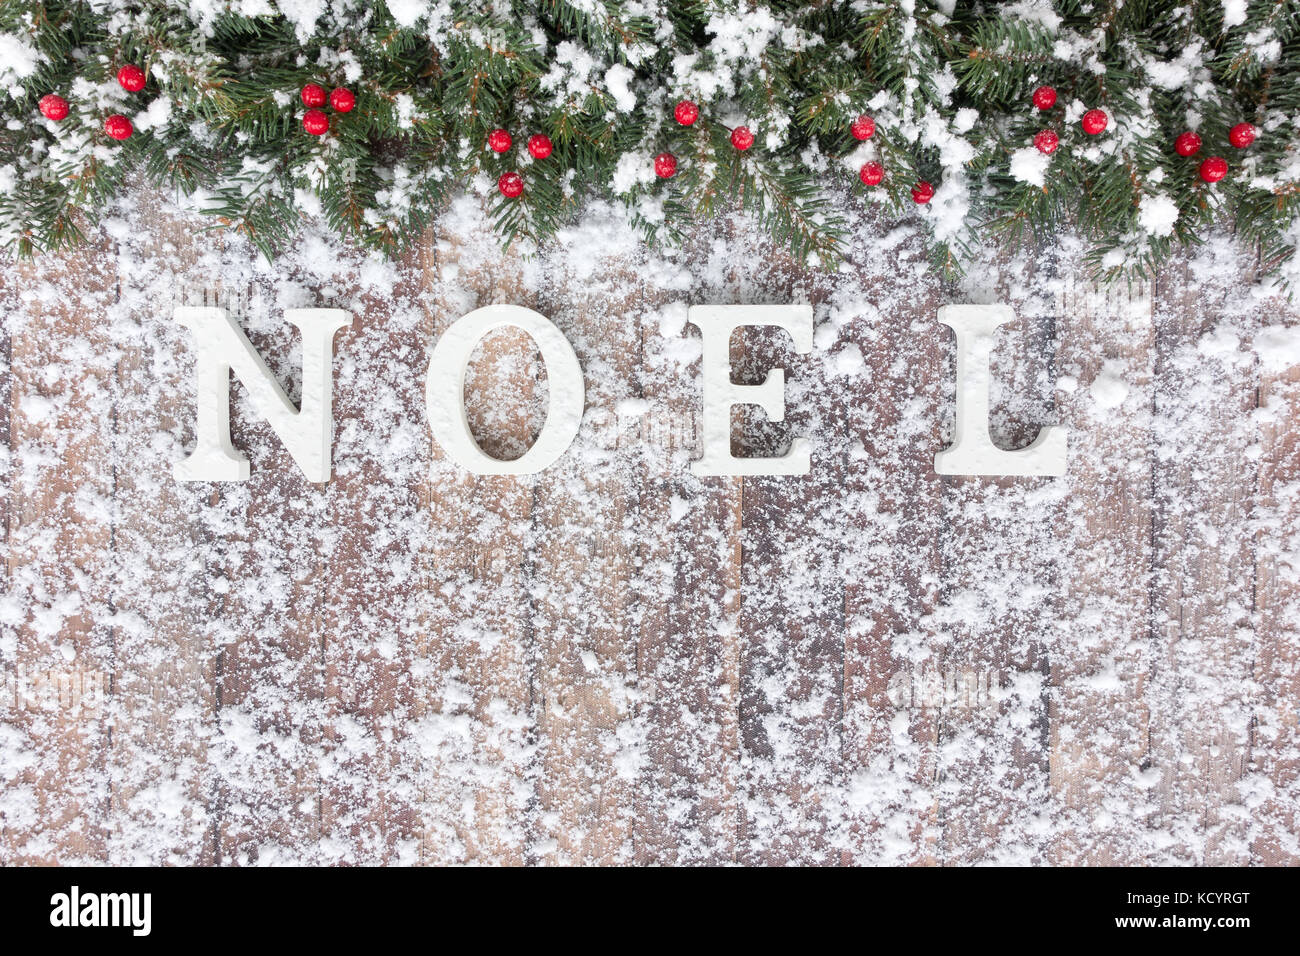 Christmas border out of snow covered natural christmas tree fir christmas border out of snow covered natural christmas tree fir twigs red berries and noel written with white wood letters on a brown wooden backgrou madrichimfo Images